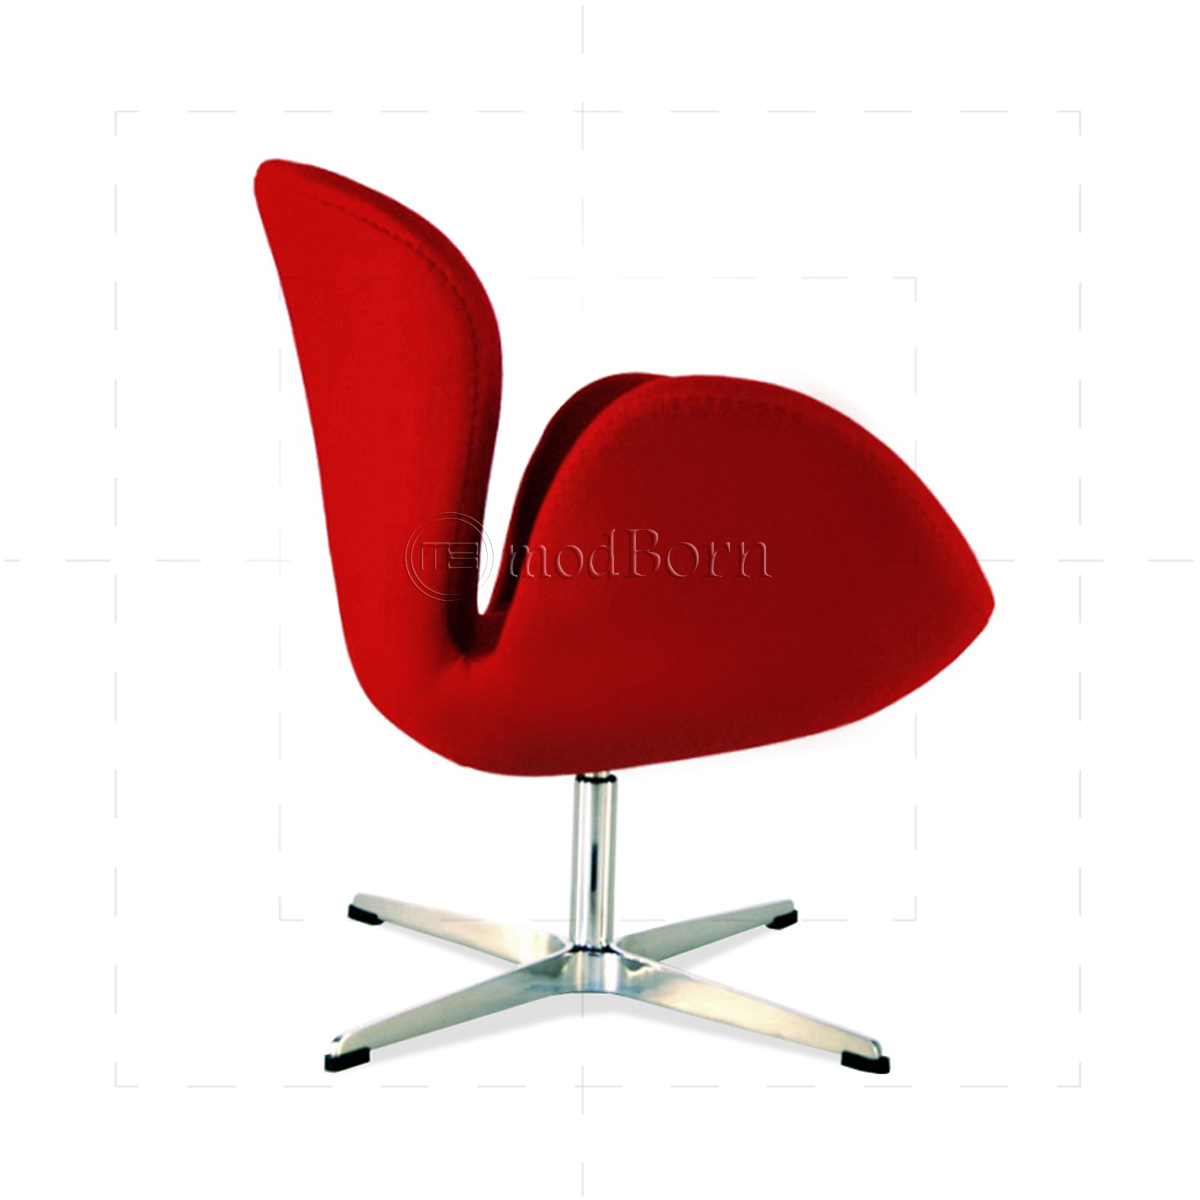 arne jacobsen style swan chair red. Black Bedroom Furniture Sets. Home Design Ideas